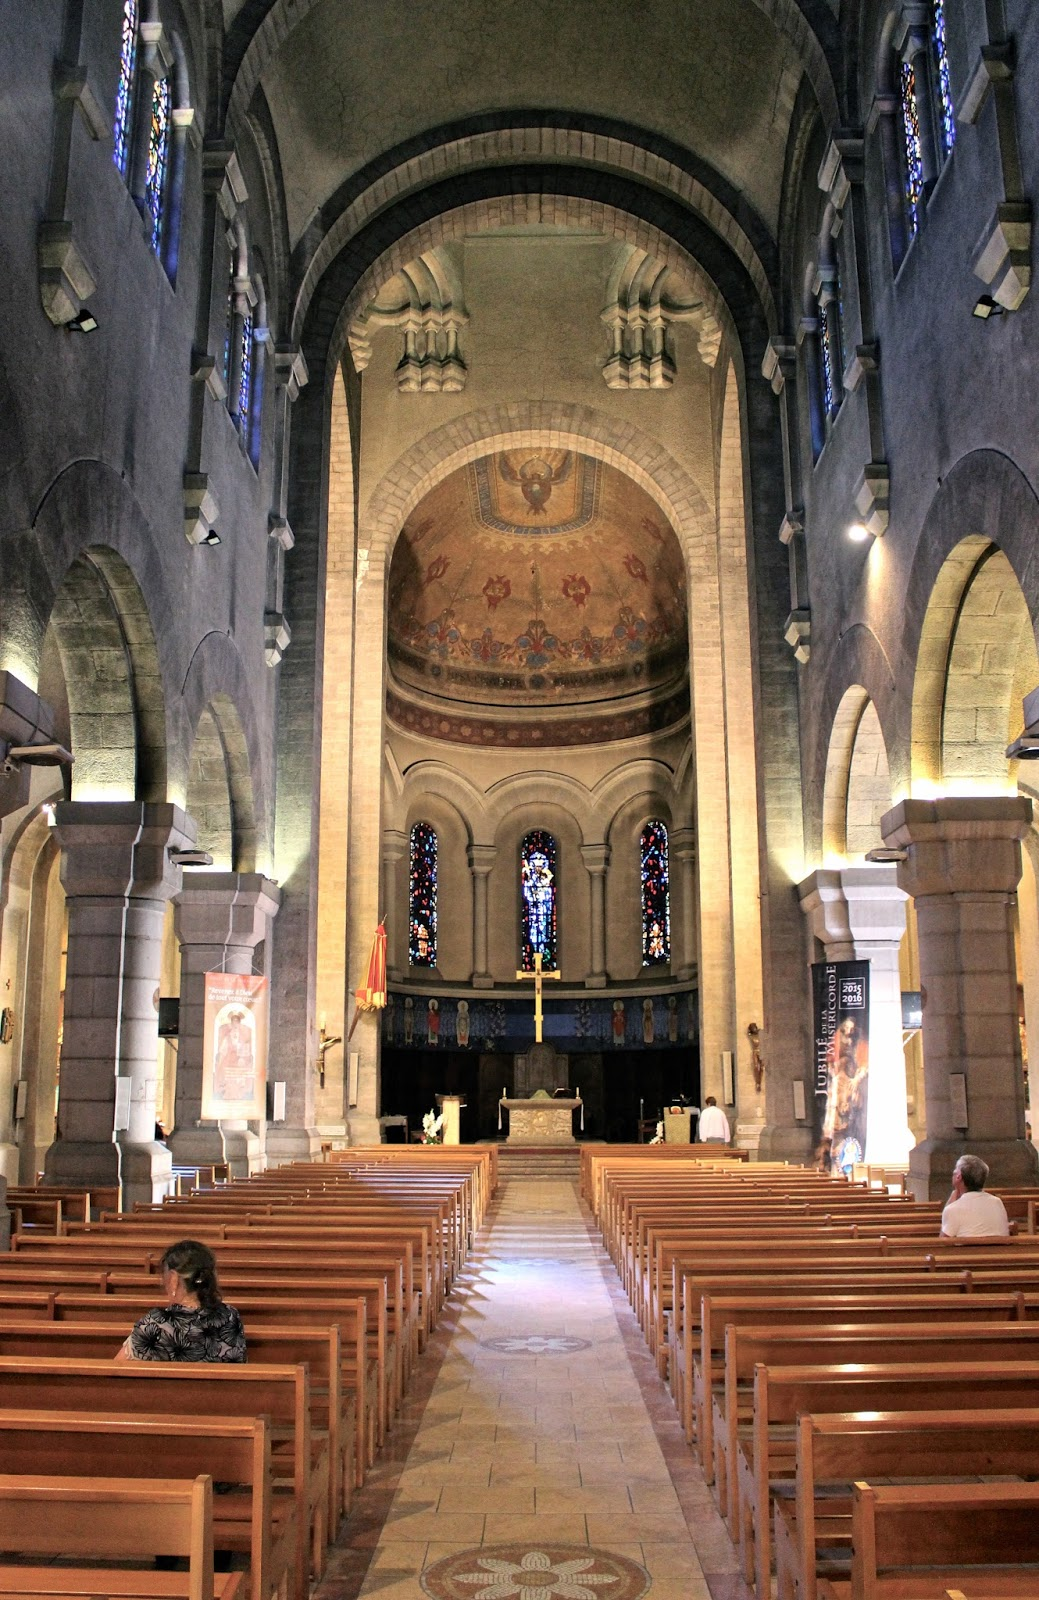 Saint Raphaël church interior